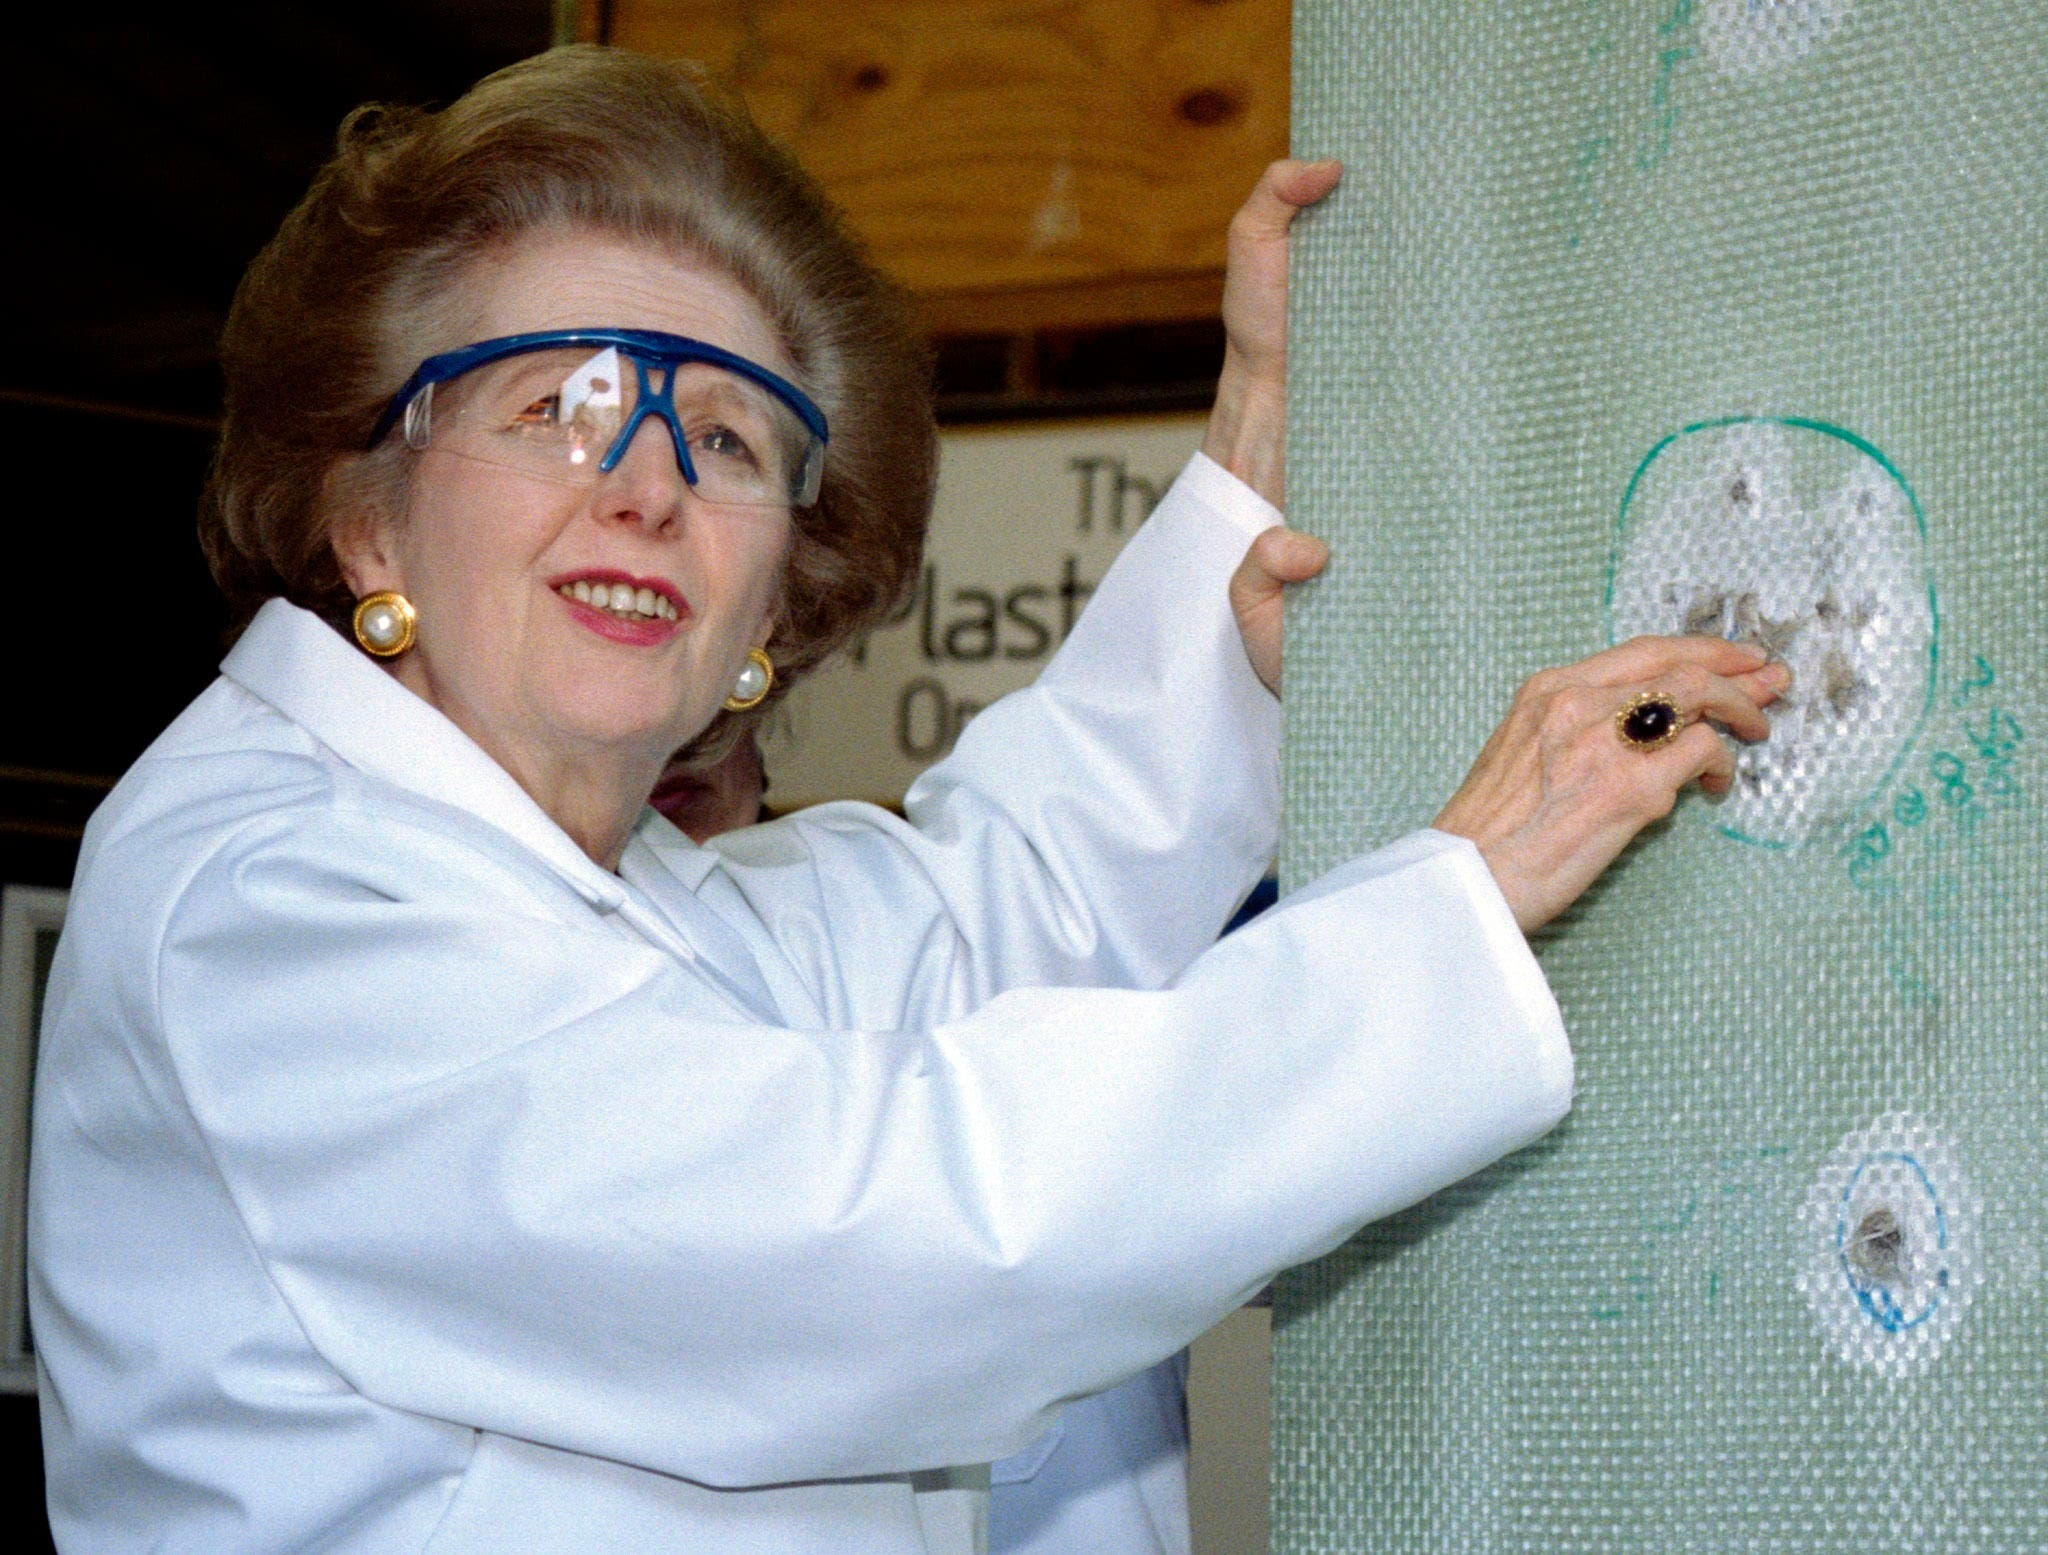 Baroness Thatcher examines a sheet of bullet-proof material during a visit to a factory producing ballistic and blast protection products in this April 9, 1997 file photo. (Reuters)